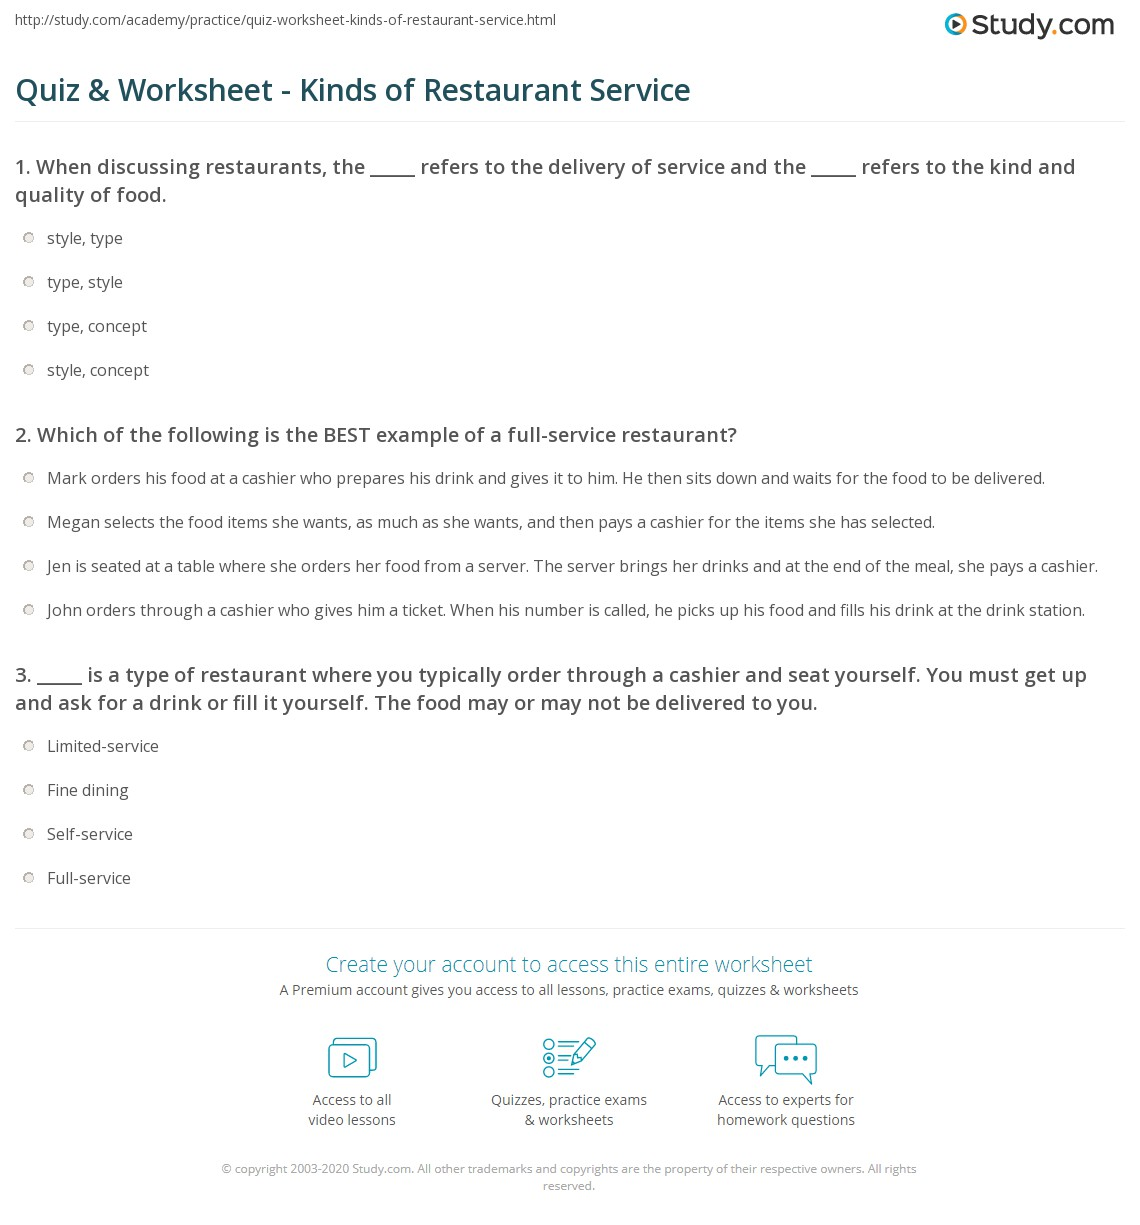 TYPES OF RESTAURANT SERVICE PDF DOWNLOAD